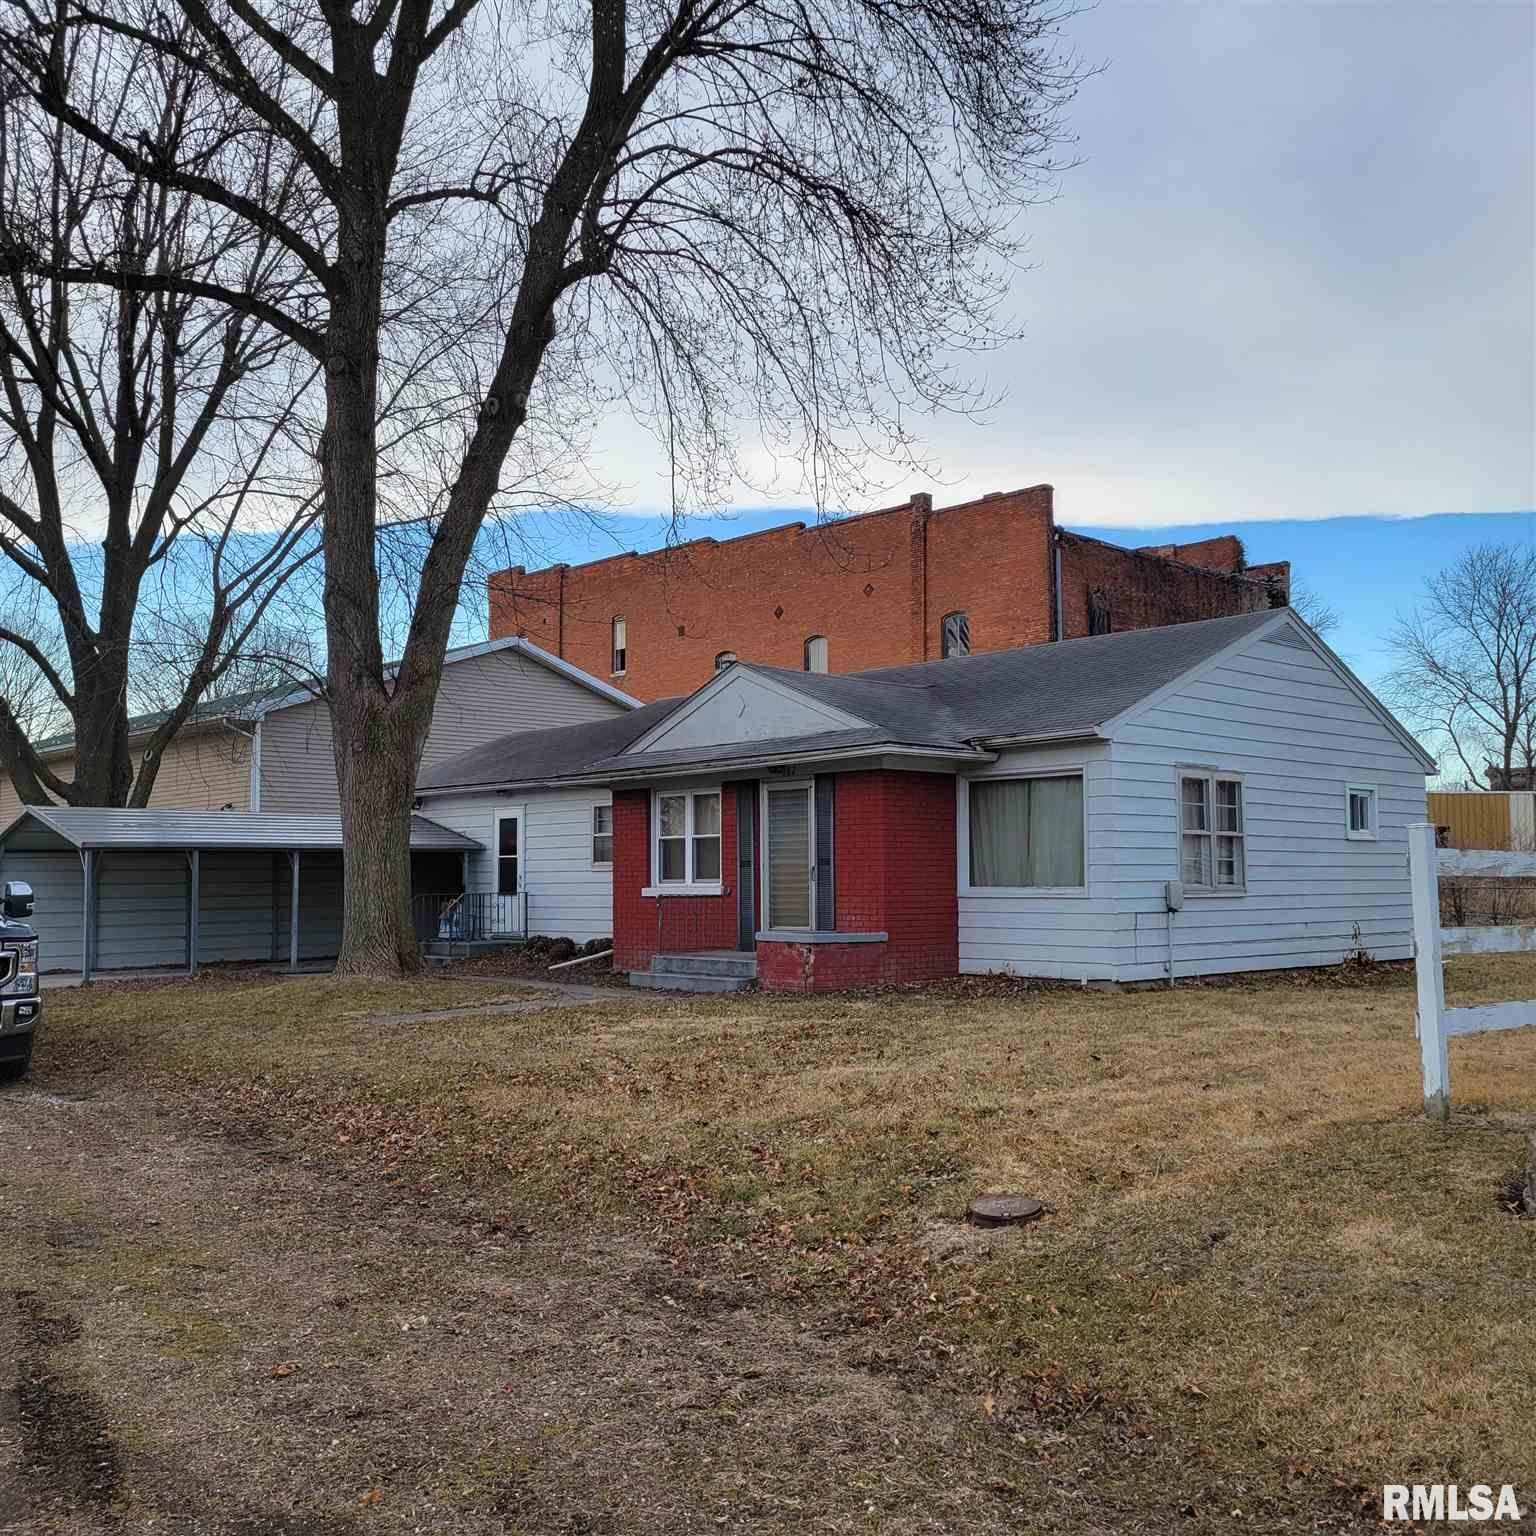 102 E 1ST Property Photo - La Harpe, IL real estate listing